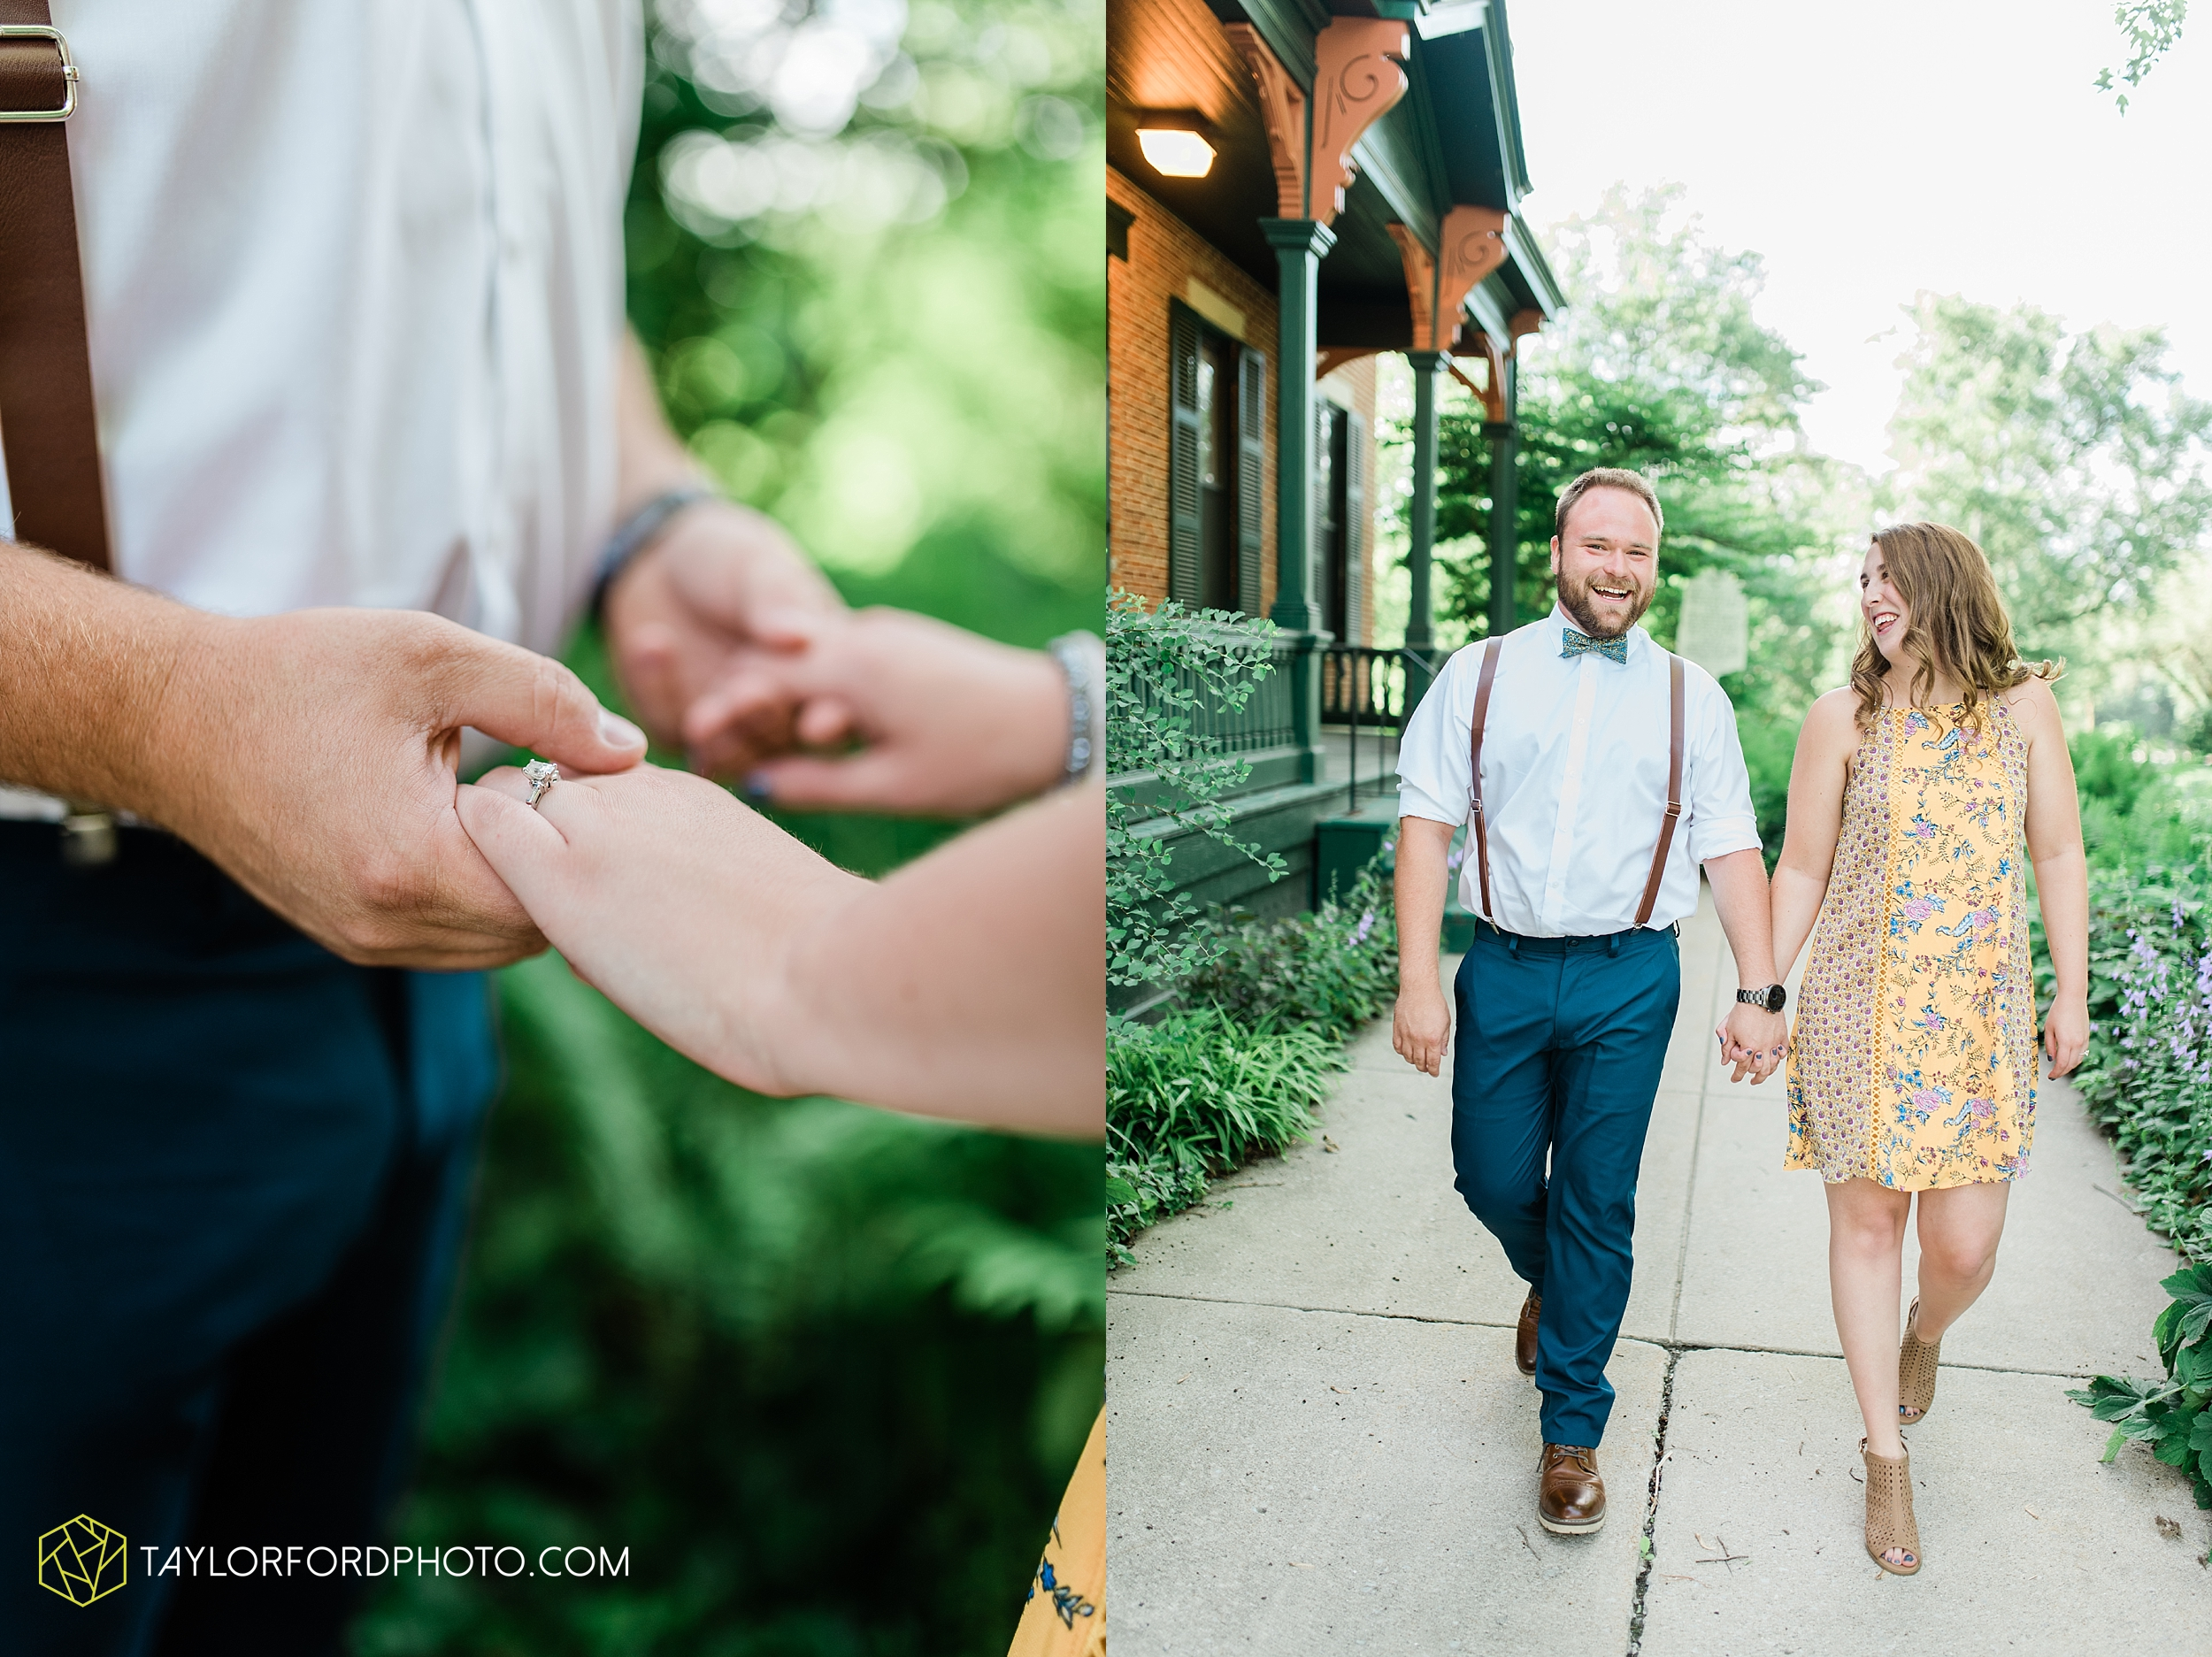 chelsey-jackson-young-downtown-fort-wayne-indiana-the-halls-deck-engagement-wedding-photographer-Taylor-Ford-Photography_8192.jpg